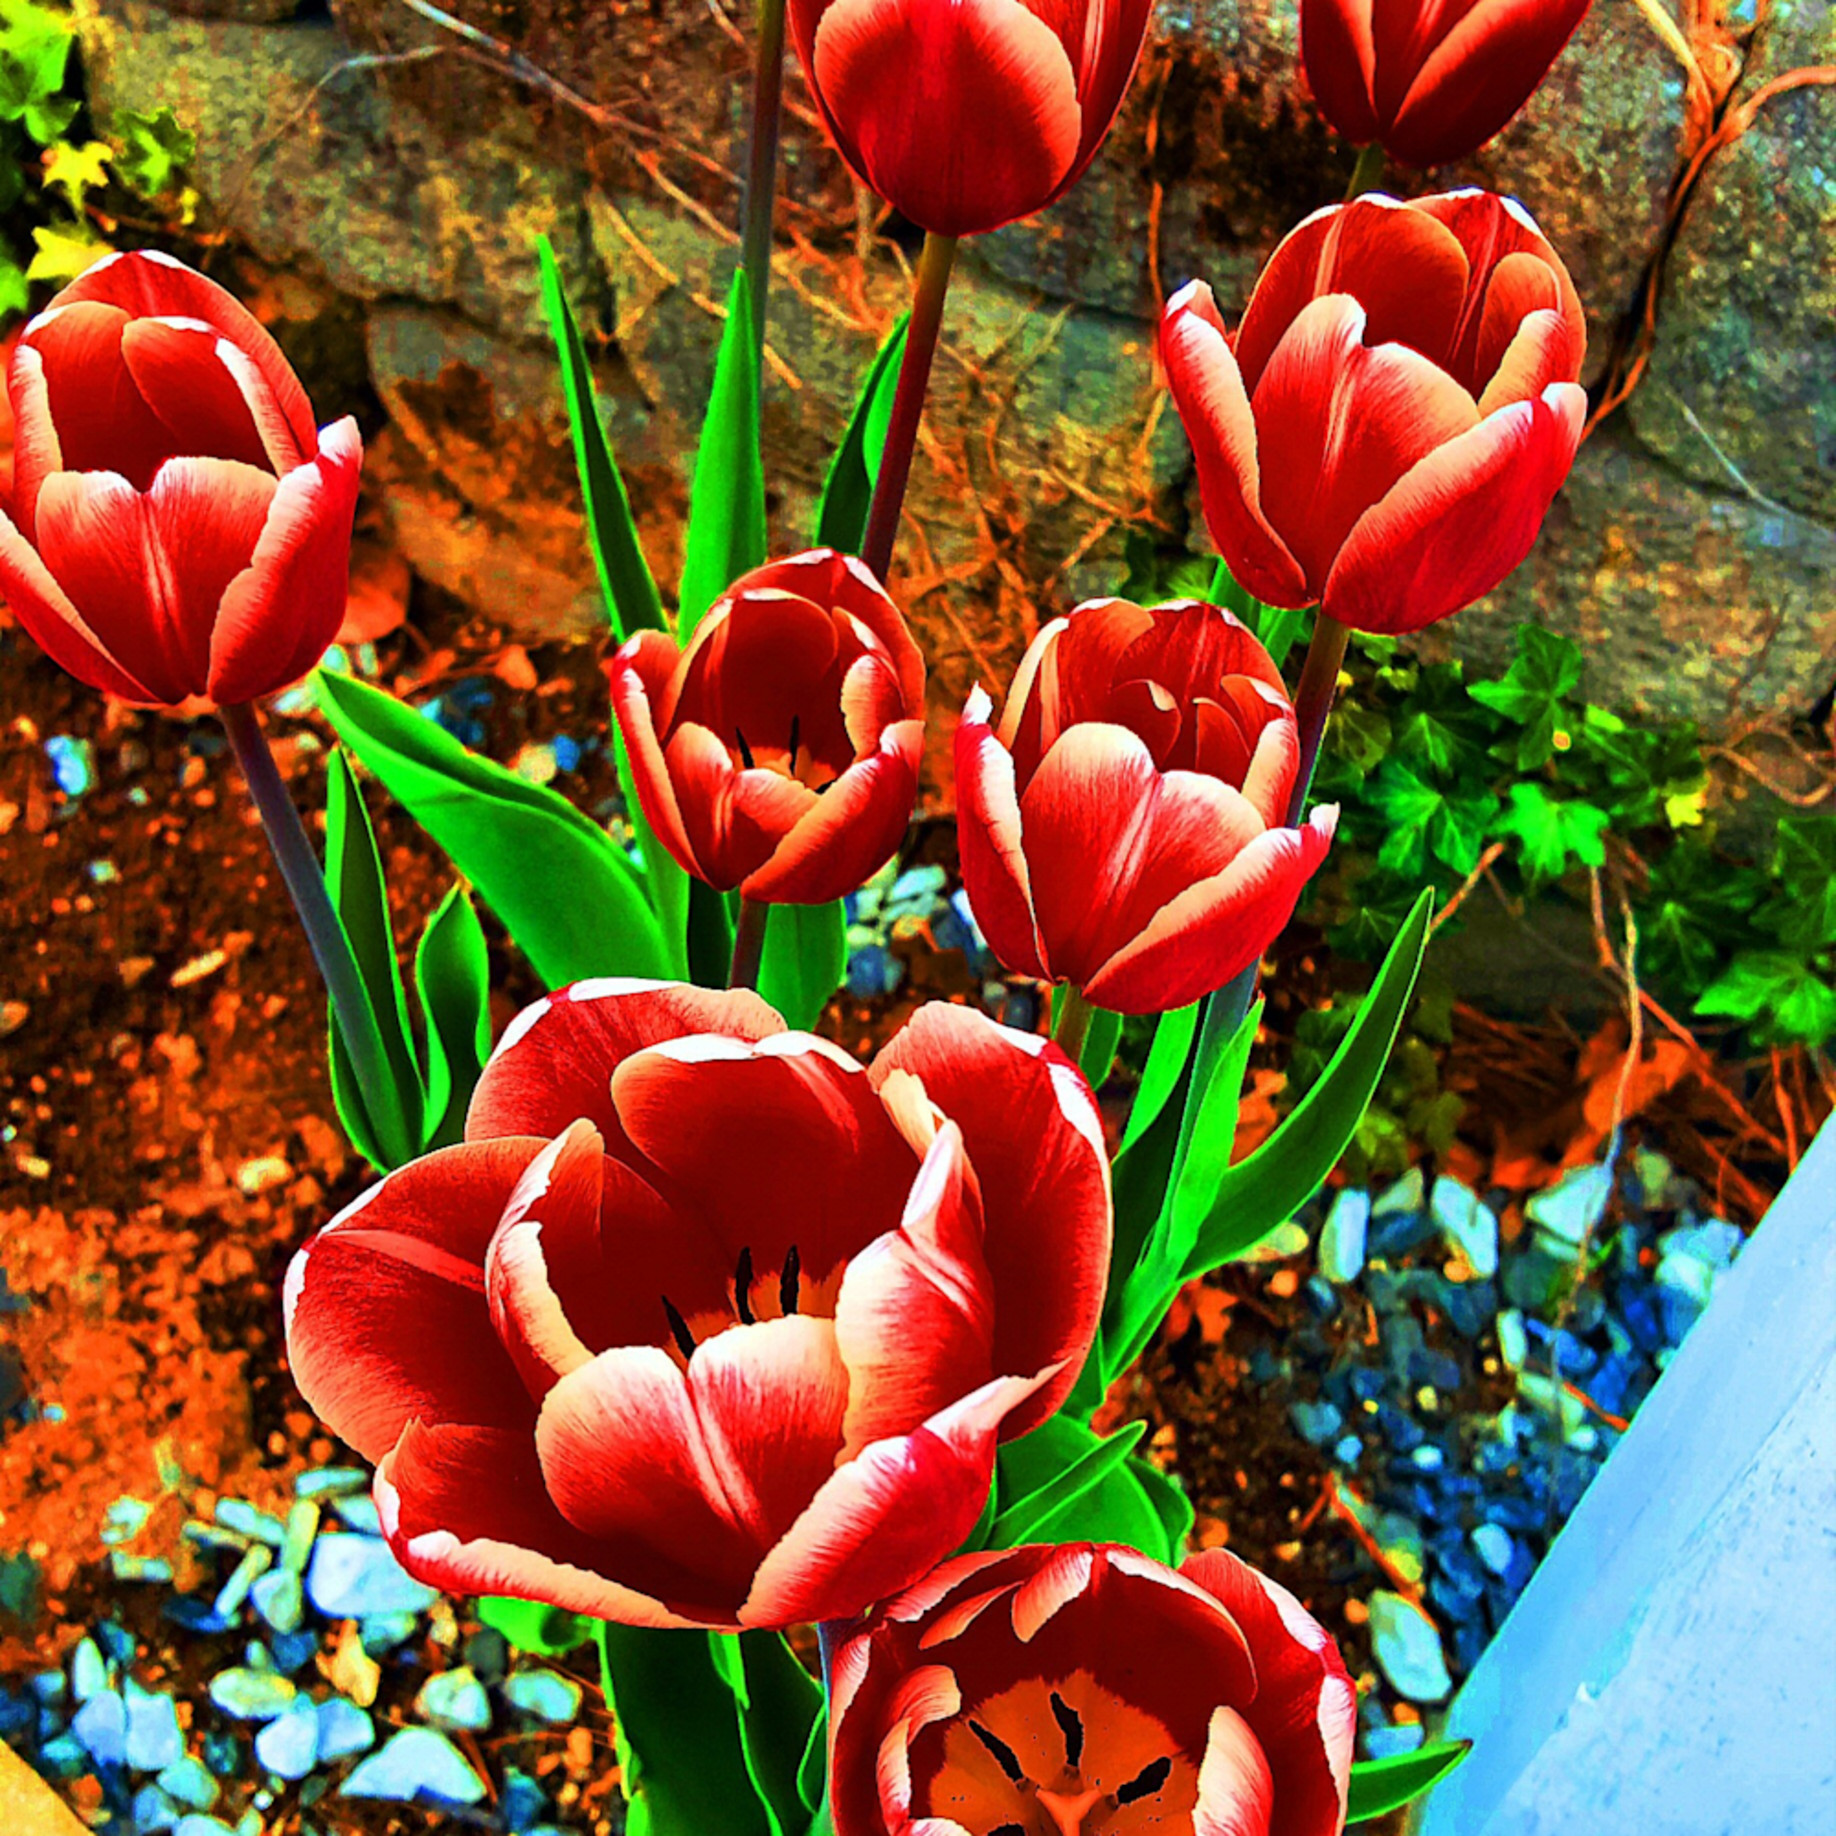 Striped tulips saturated xlamy3